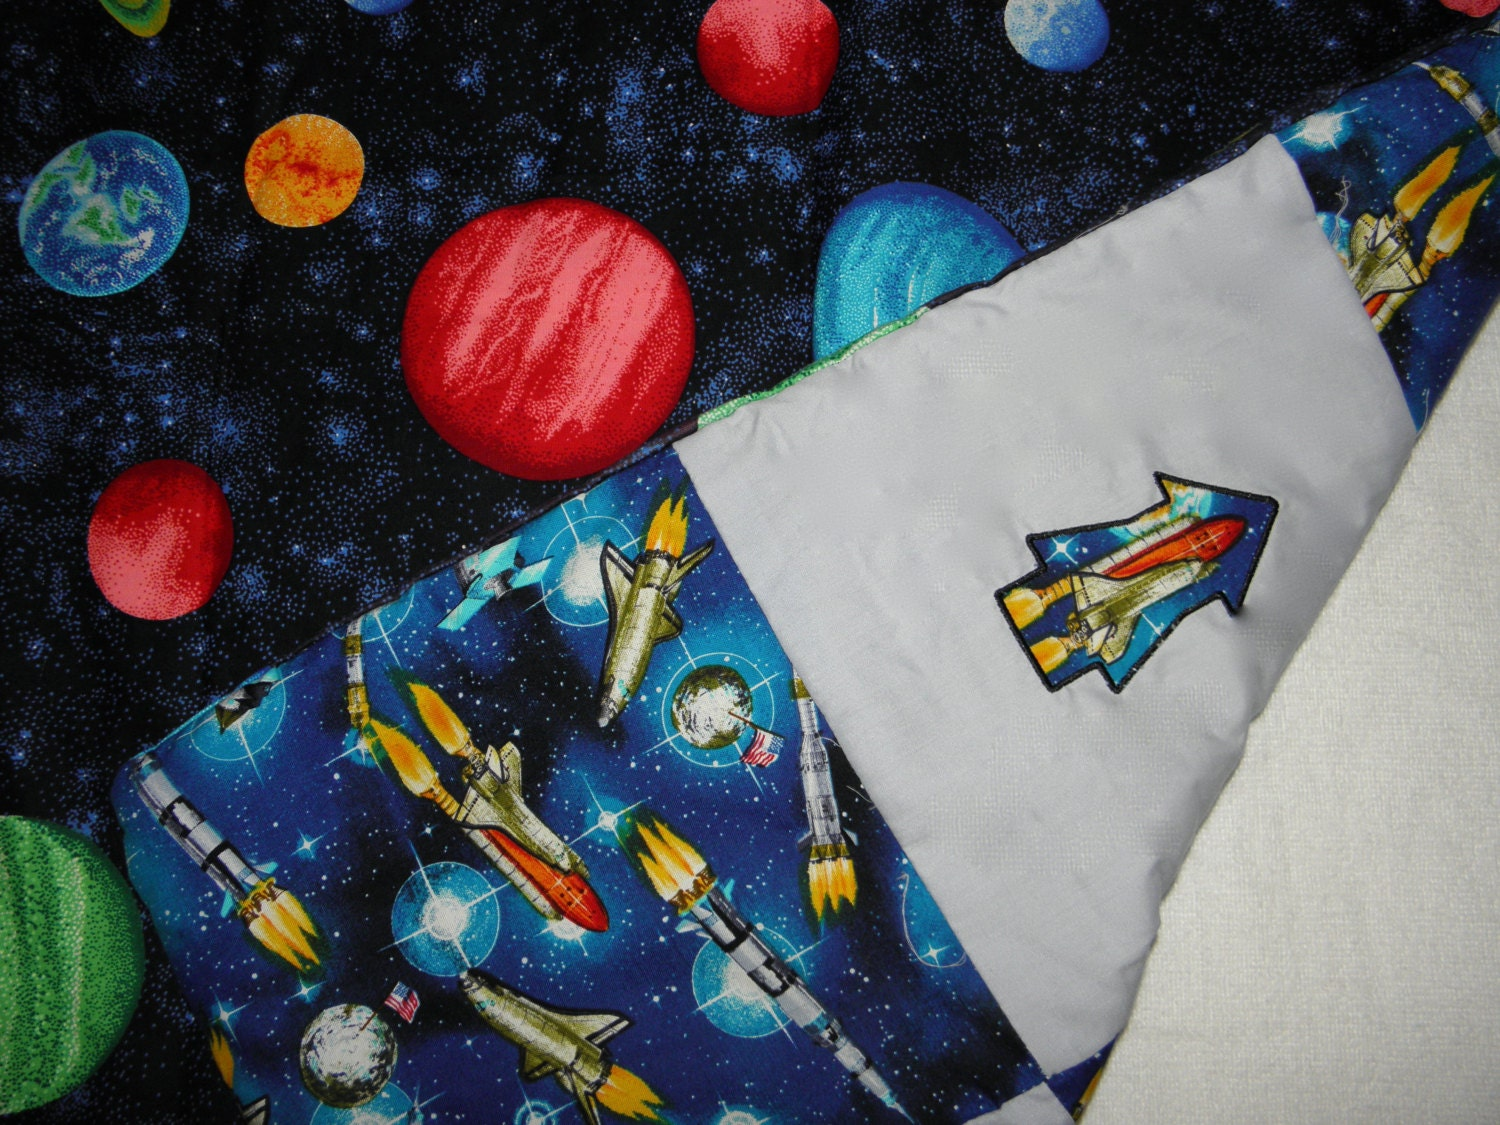 Outer space quilt baby blanket lap quilt by julssewcrazy for Outer space quilt